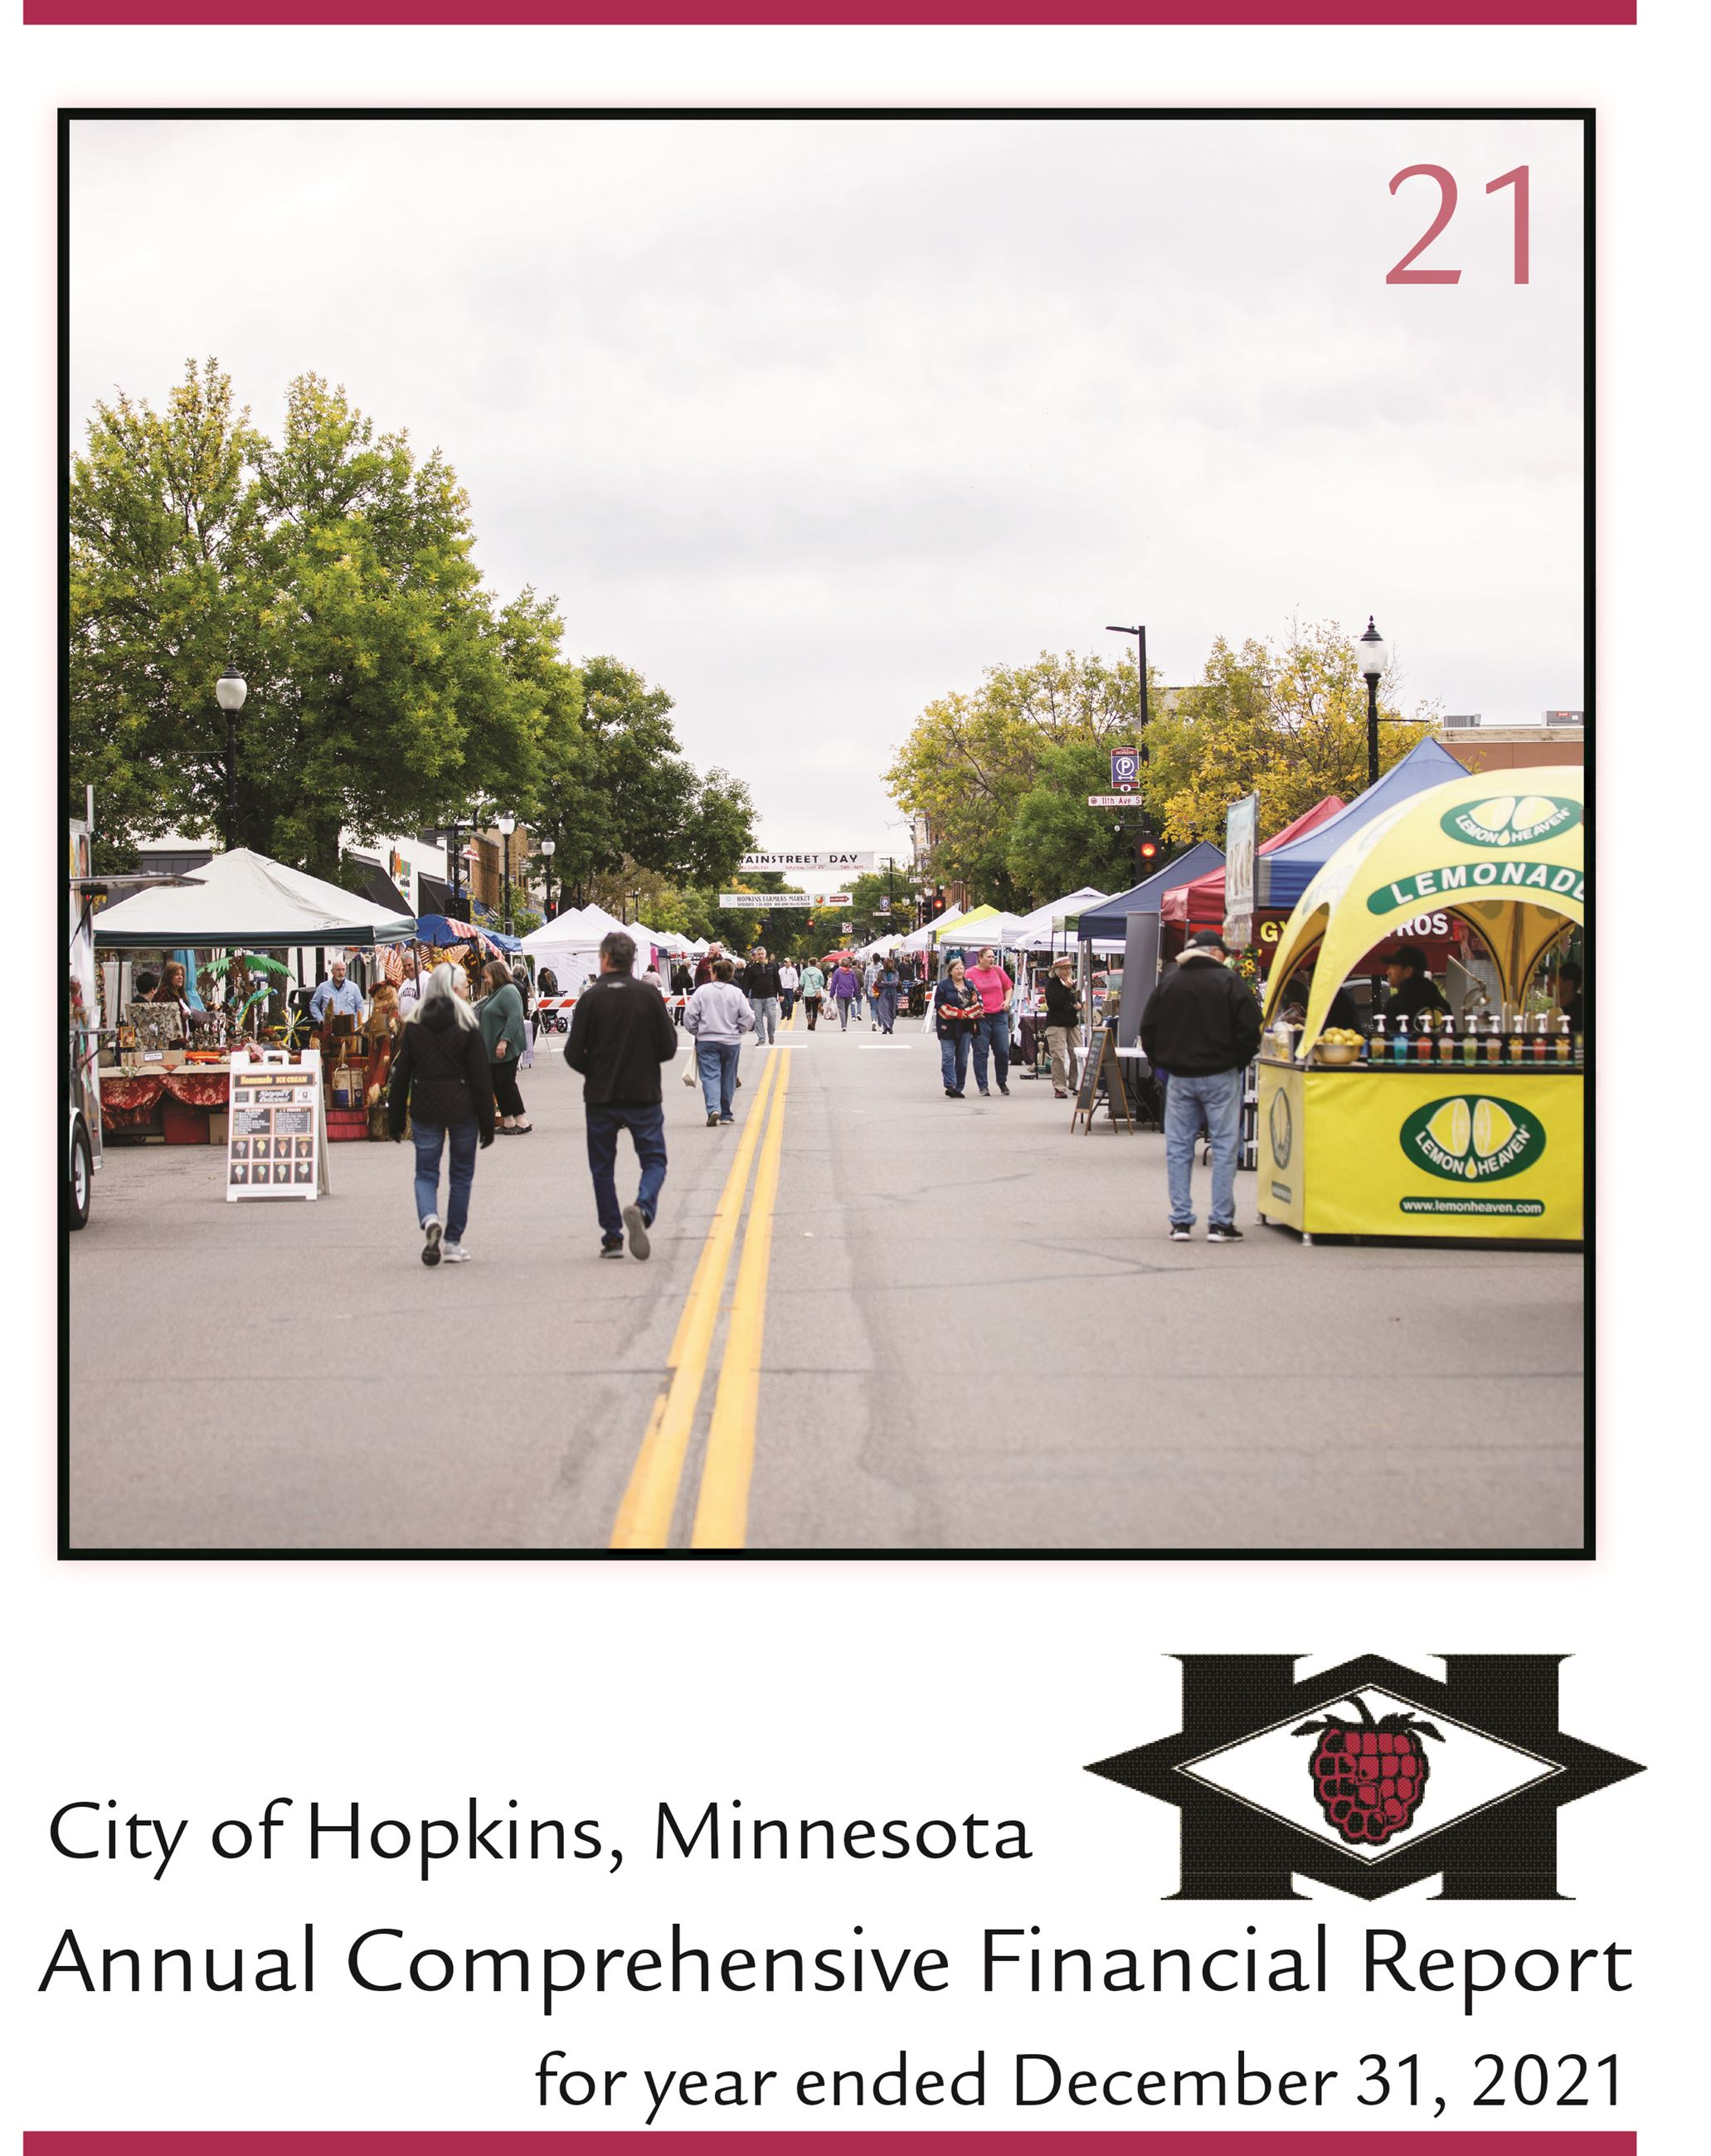 City of Hopkins, Minnesota Comprehensive Annual Financial Report